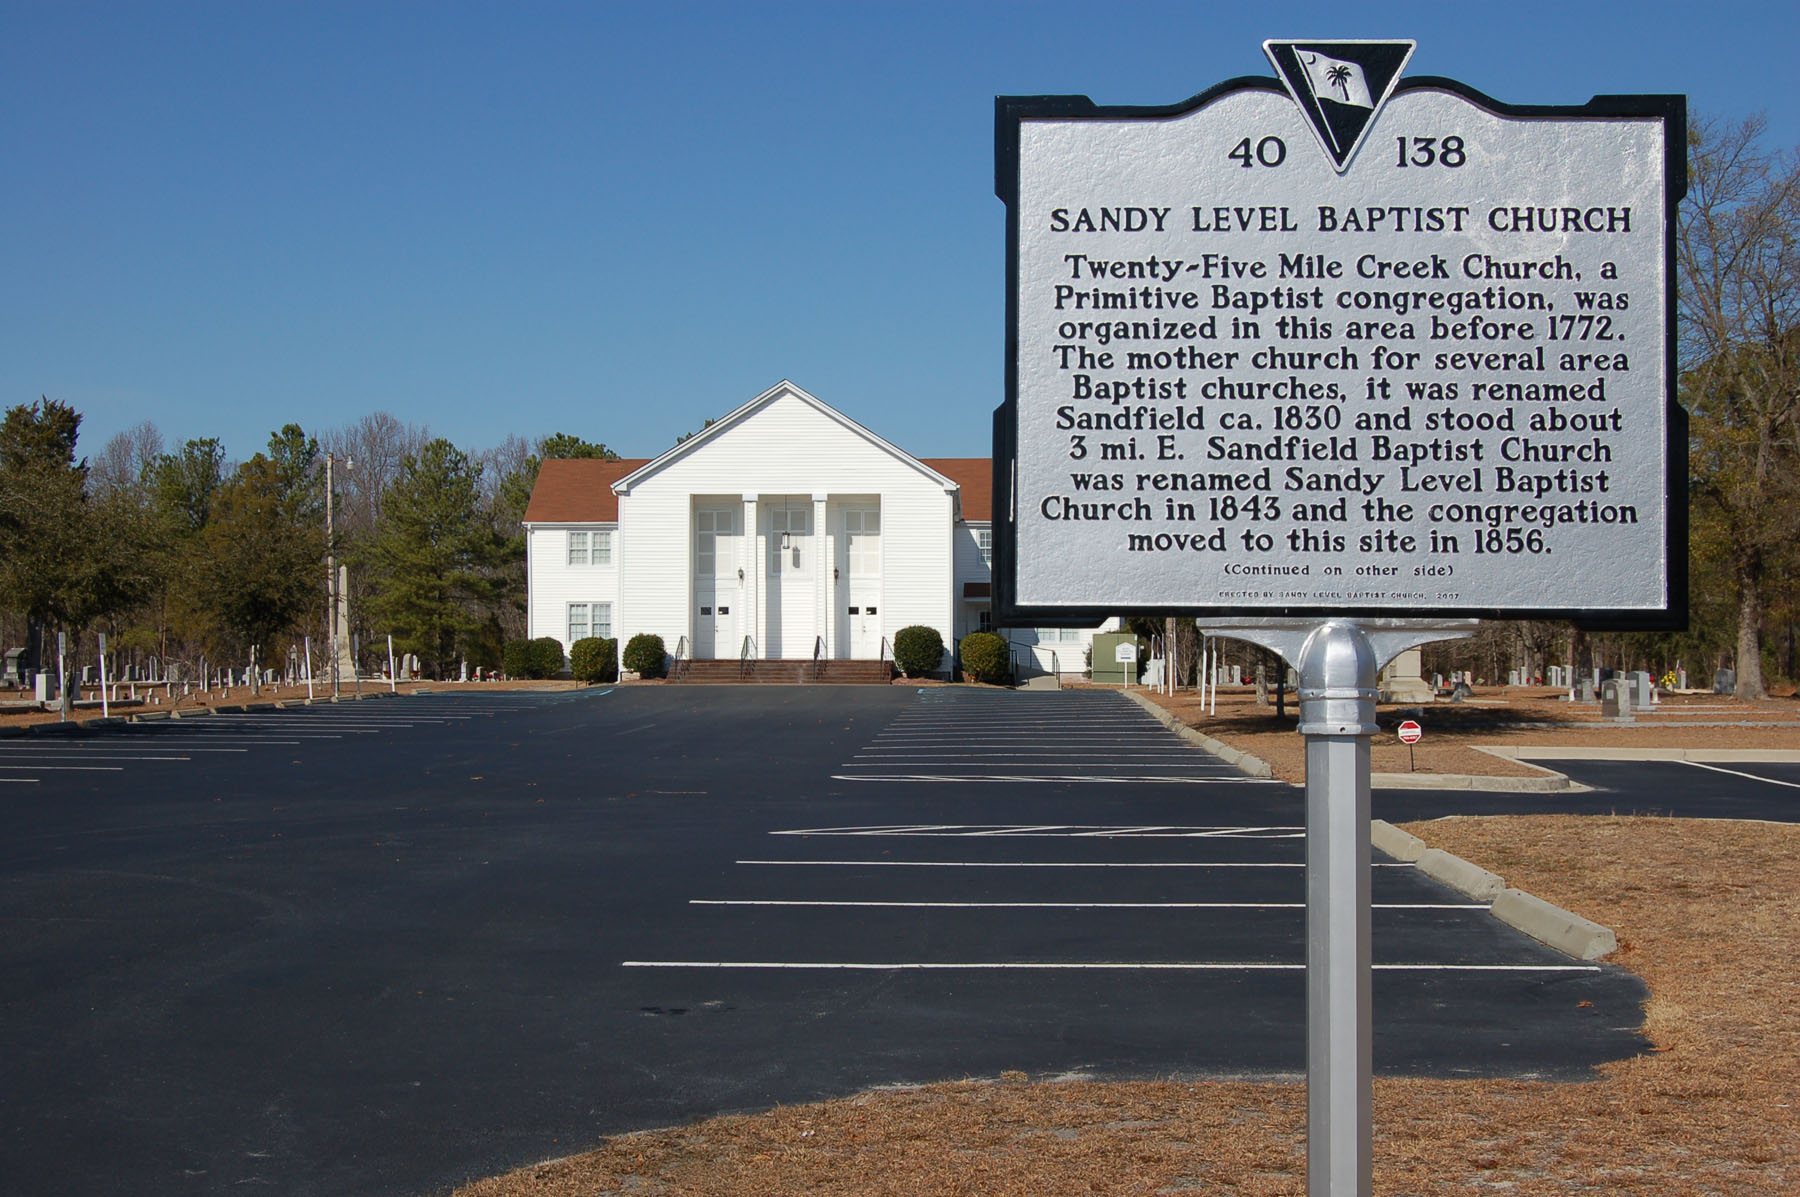 Sandy Level Baptist Church  built in 1856 and is a designated Richland County Landmark building.  Church roots date to around 1768.  Photo by Jim McLean.        .